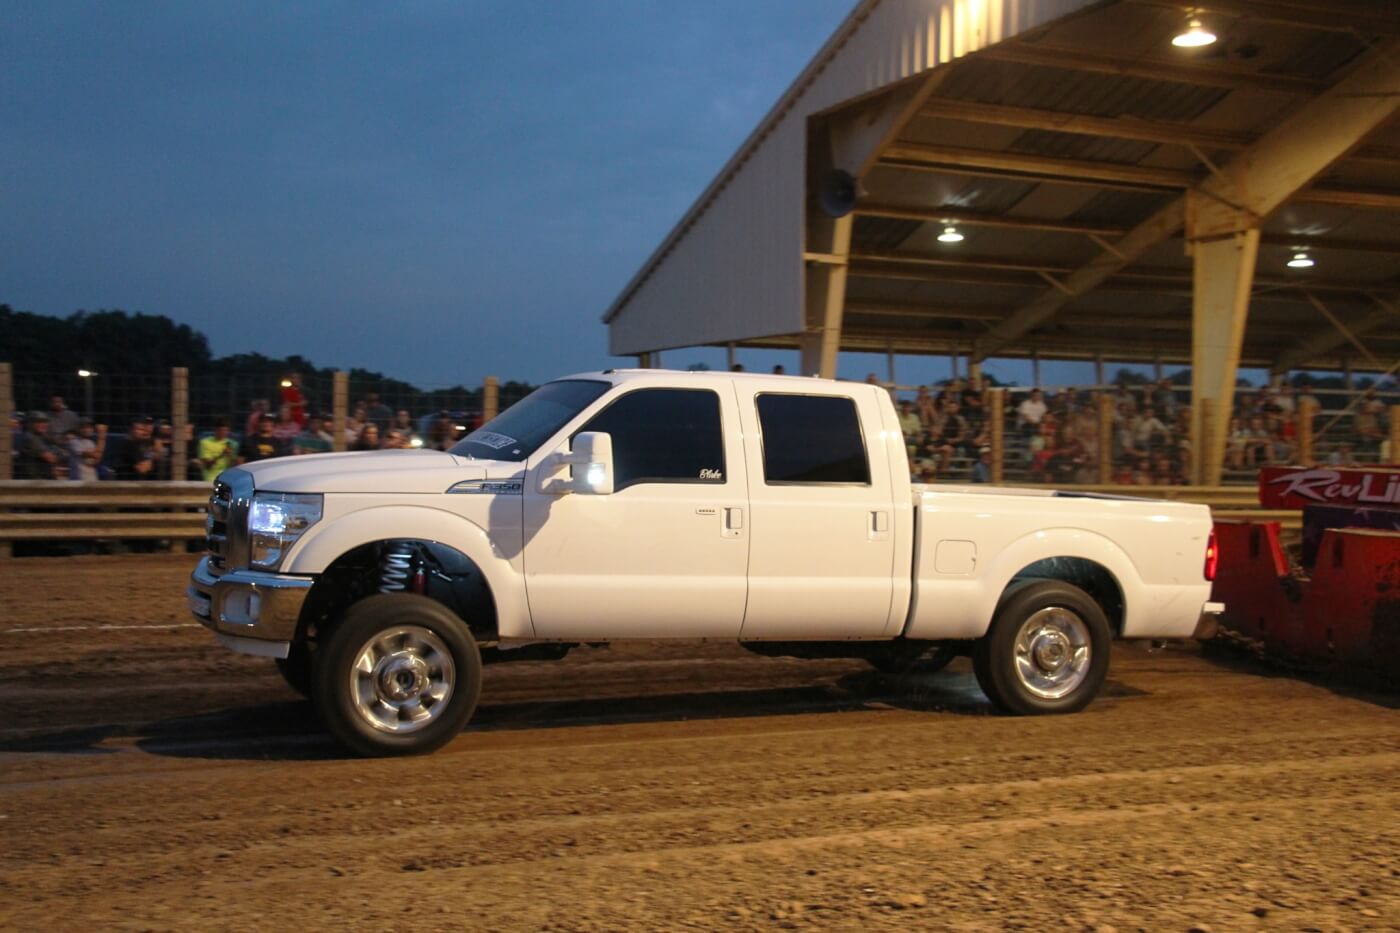 With River City Diesel (primarily a Power Stroke shop) hosting the truck pull, there was no shortage in Blue Ovals turning out to compete. Blake Beauford piloted one of the newer trucks in attendance, his '12 F-250, to the 9th spot in Work Stock.